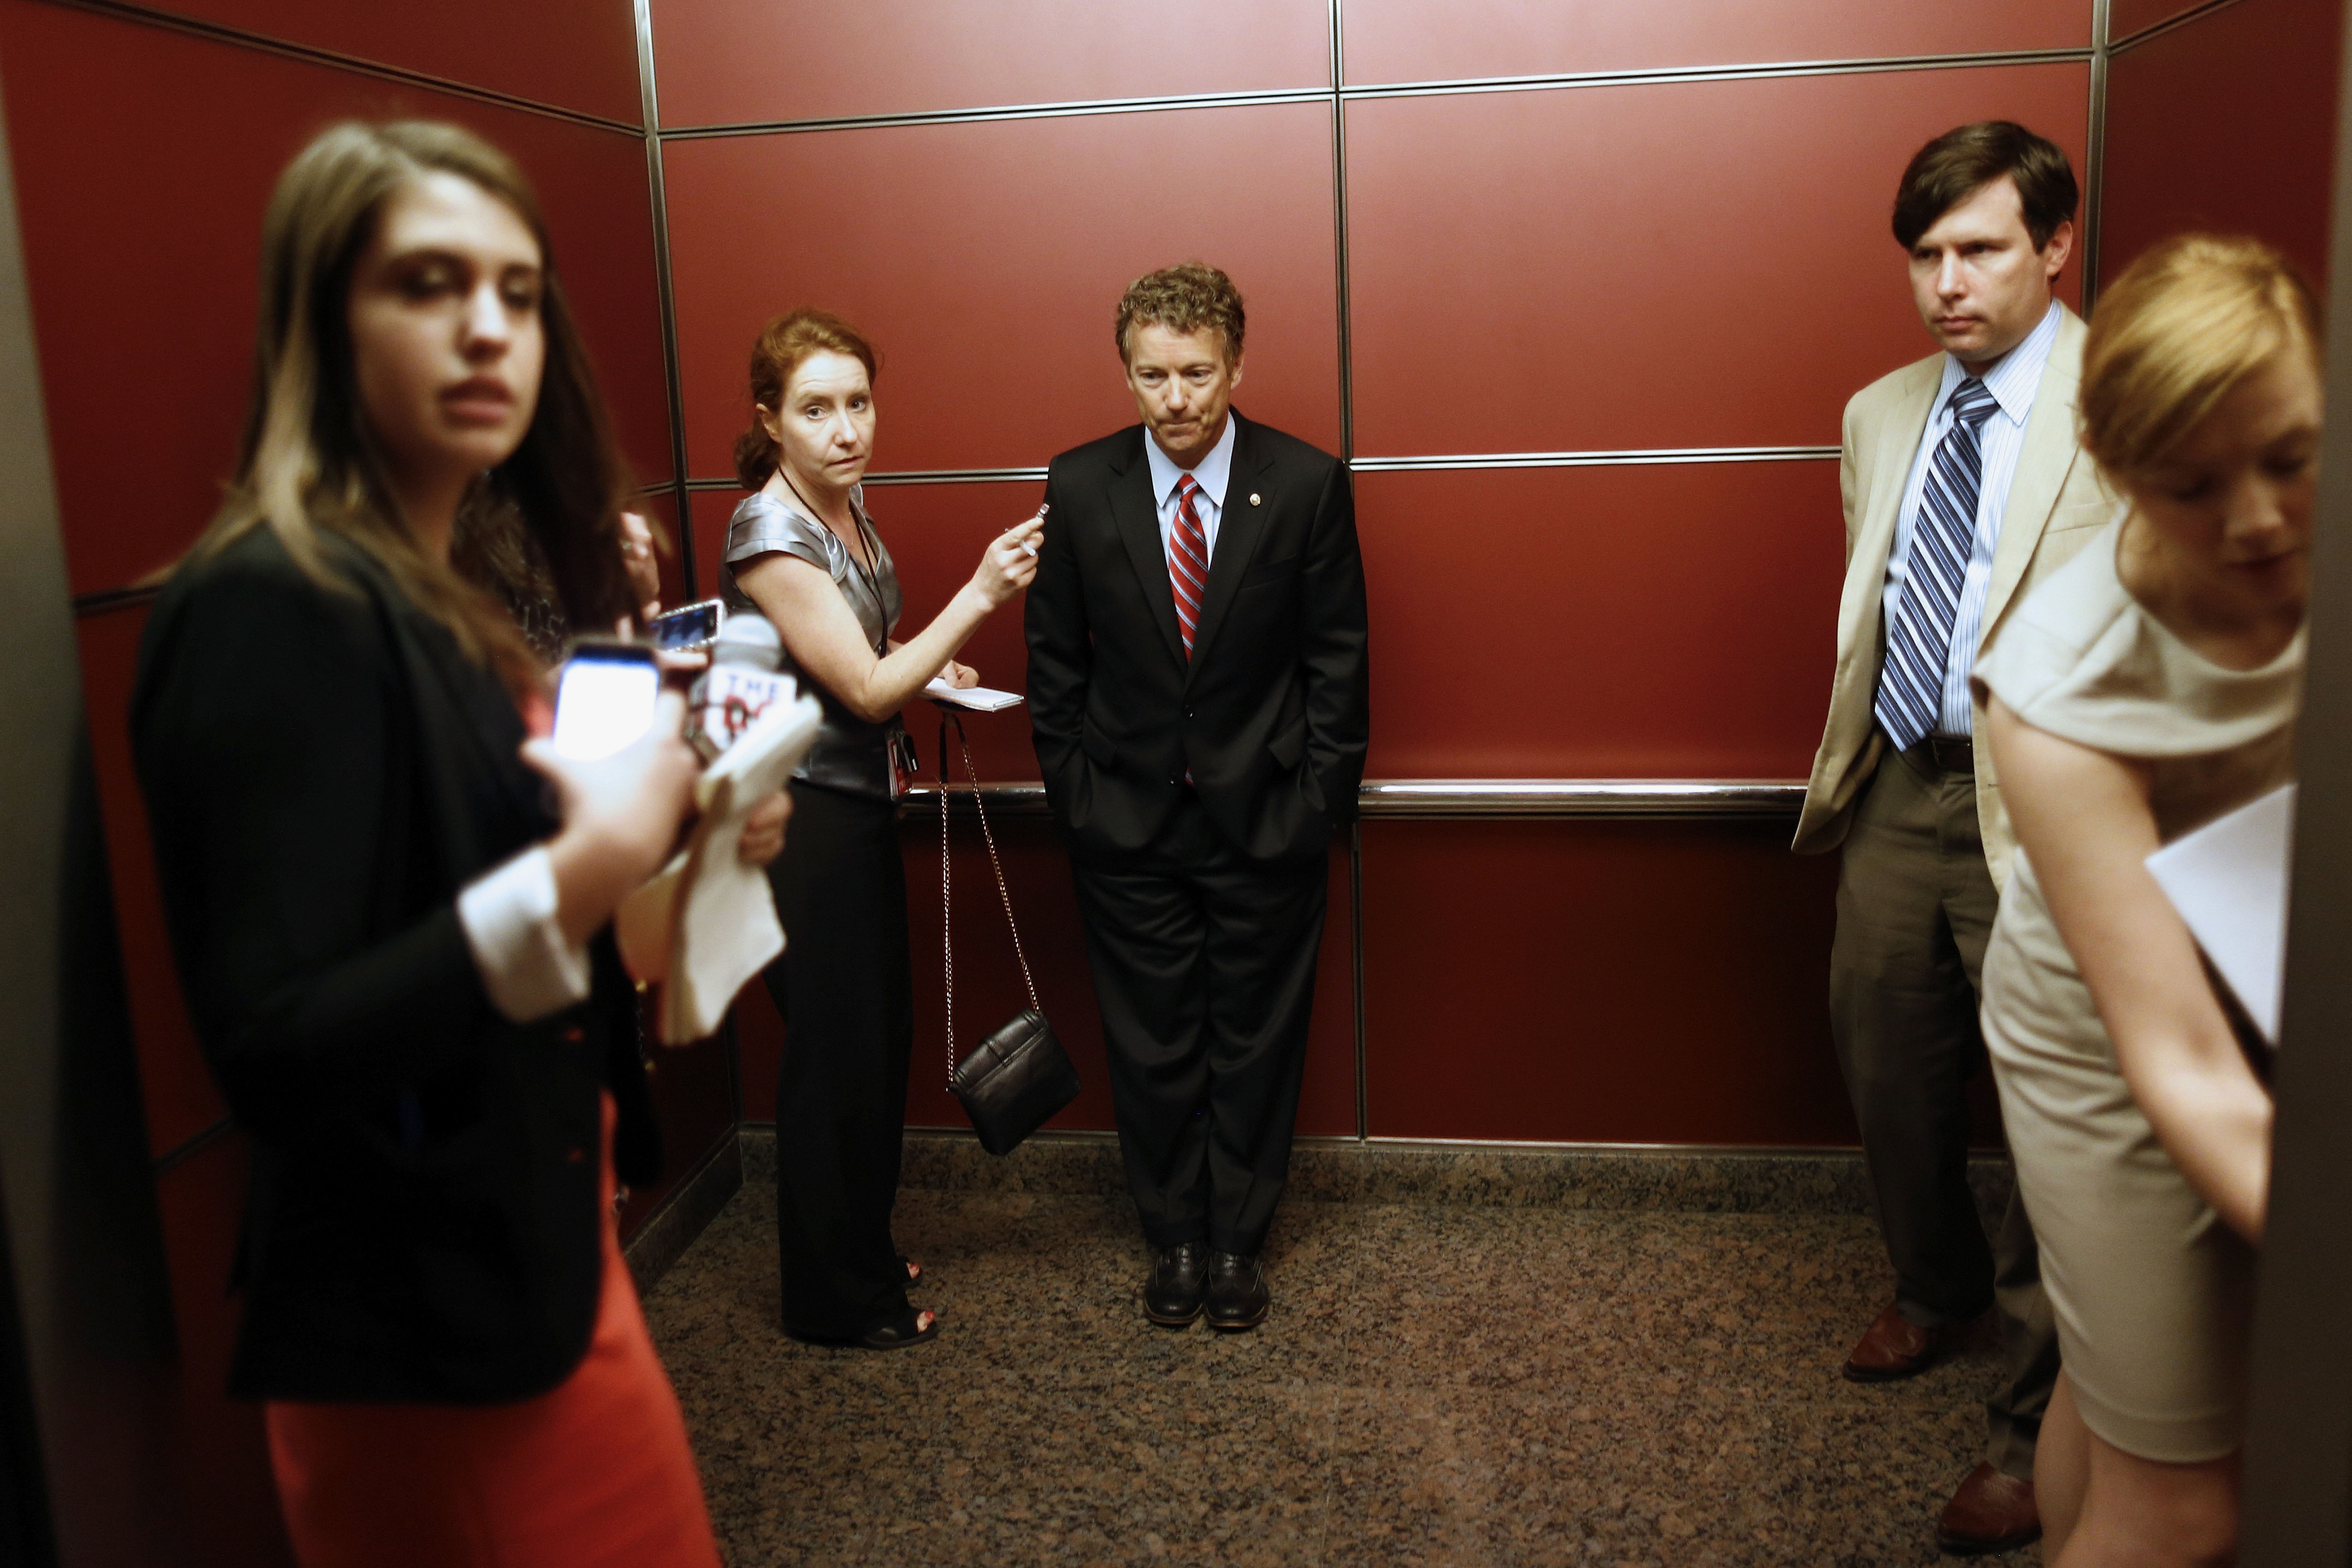 is rand paul going mainstream or is mainstream going rand paul rand paul rides in an elevator